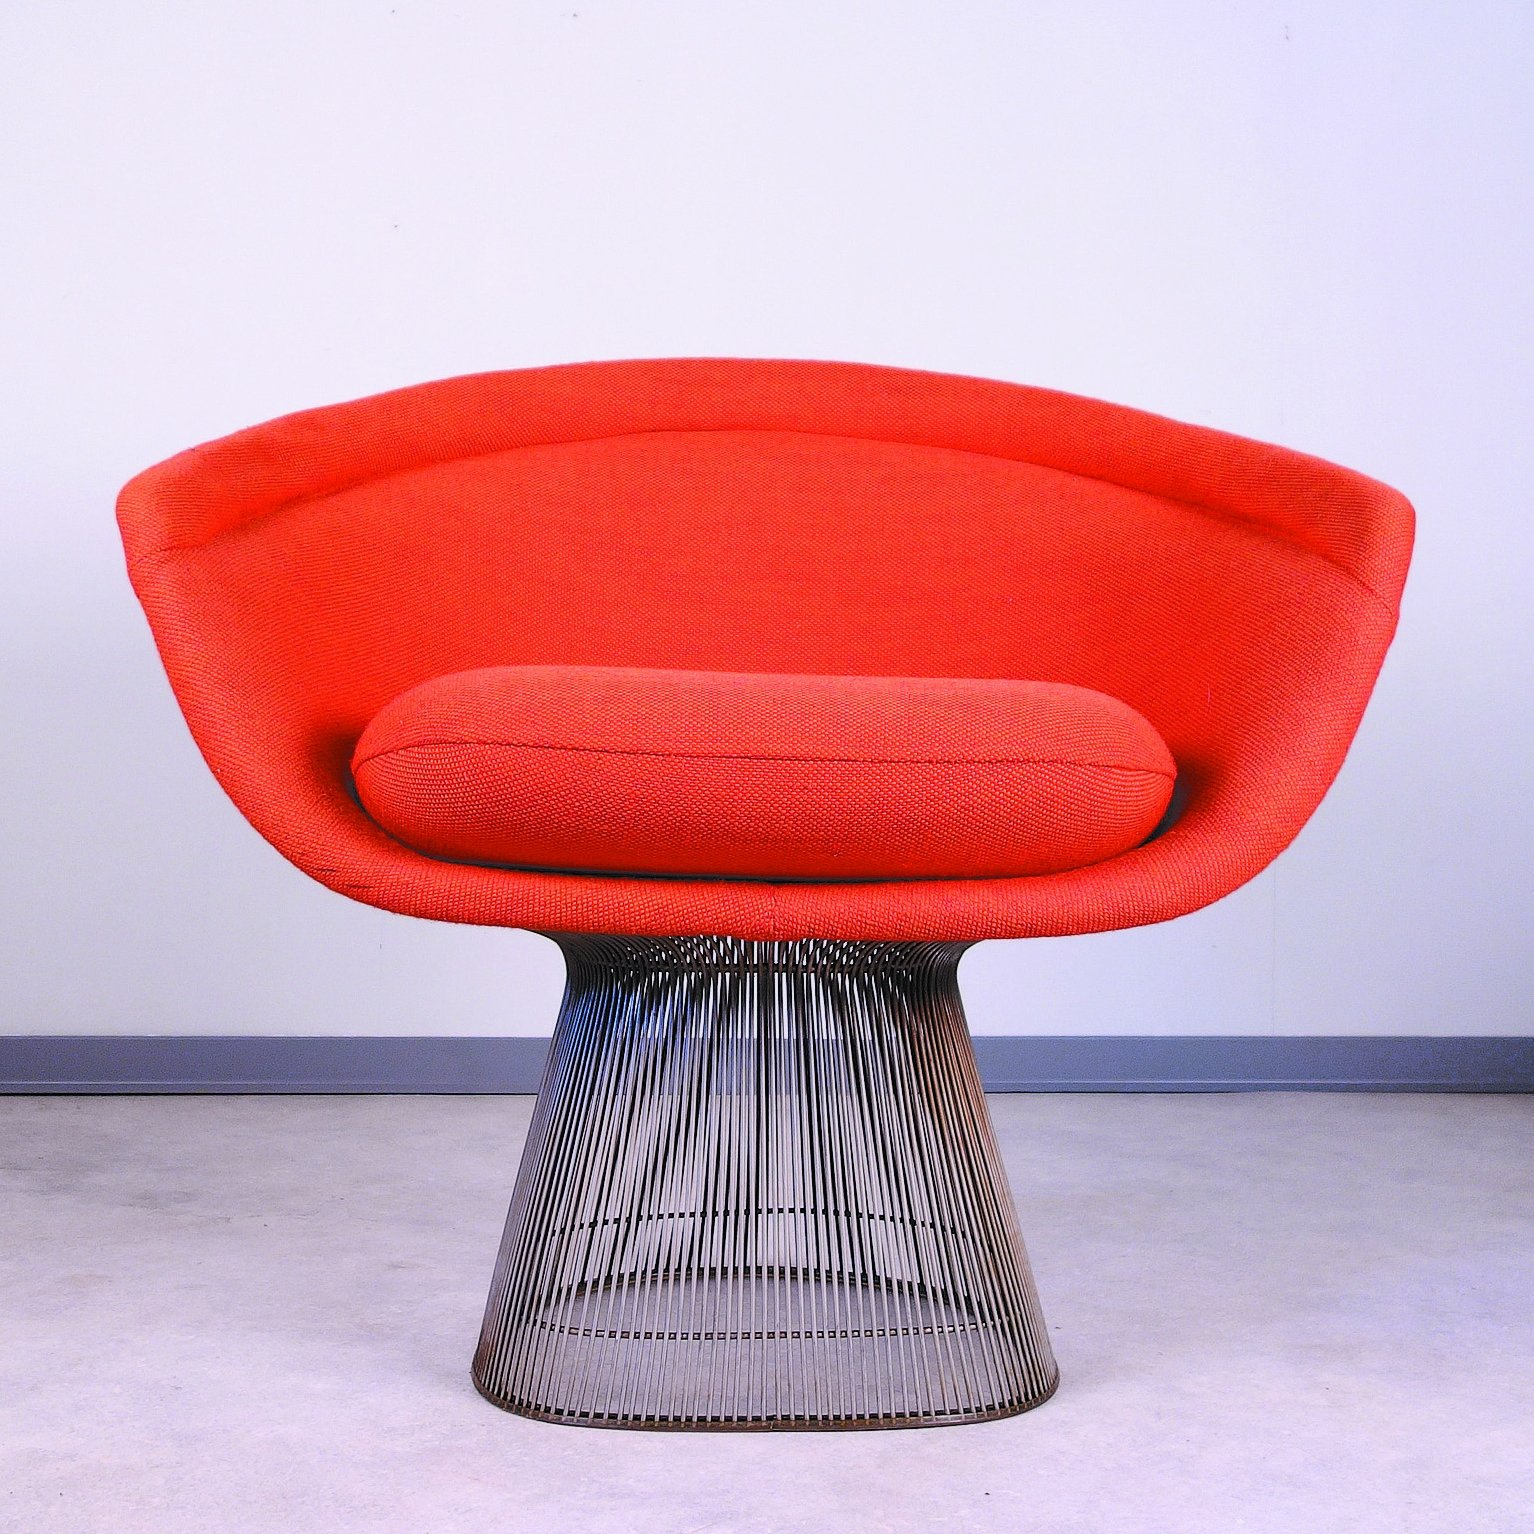 Fabulous Lounge Chair By Warren Platner For Knoll 1960S 67738 Spiritservingveterans Wood Chair Design Ideas Spiritservingveteransorg